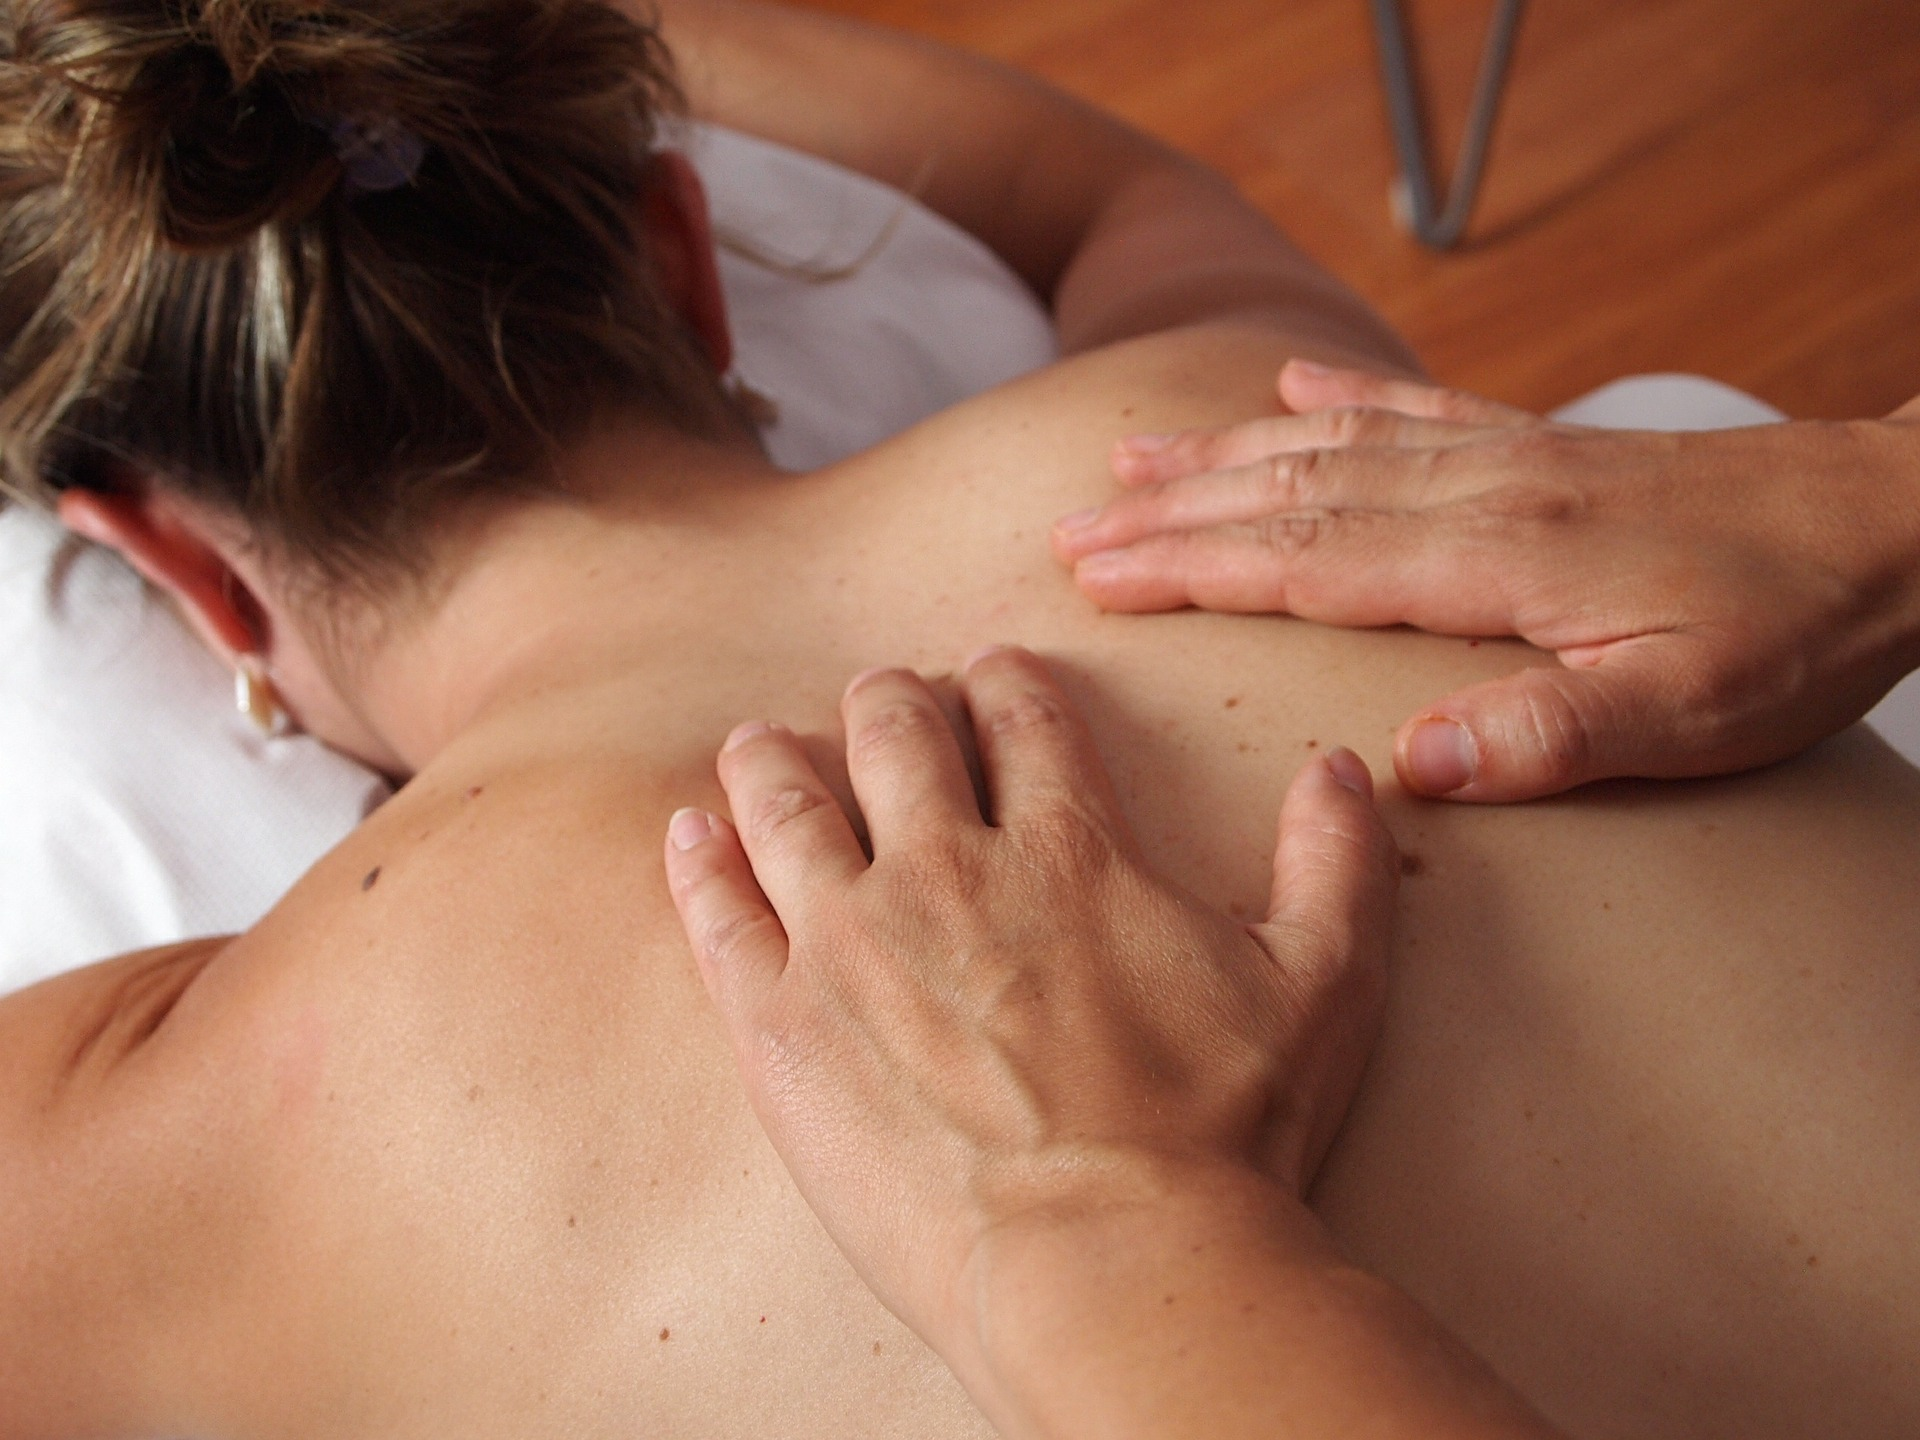 physiotherapy-567021_1920